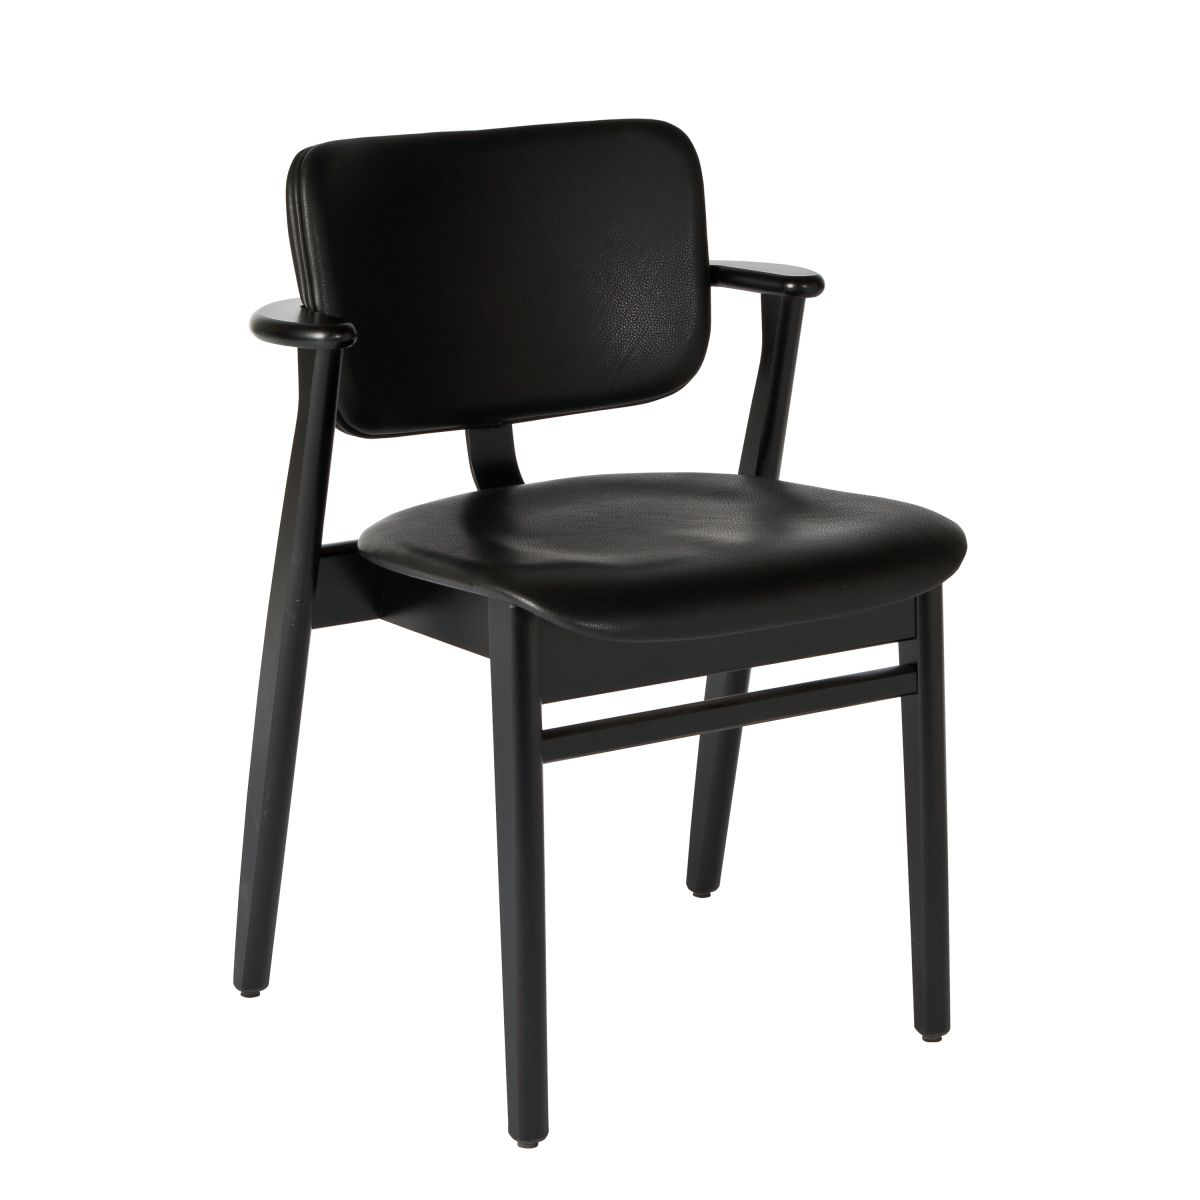 Domus Chair black lacquer leather upholstery black